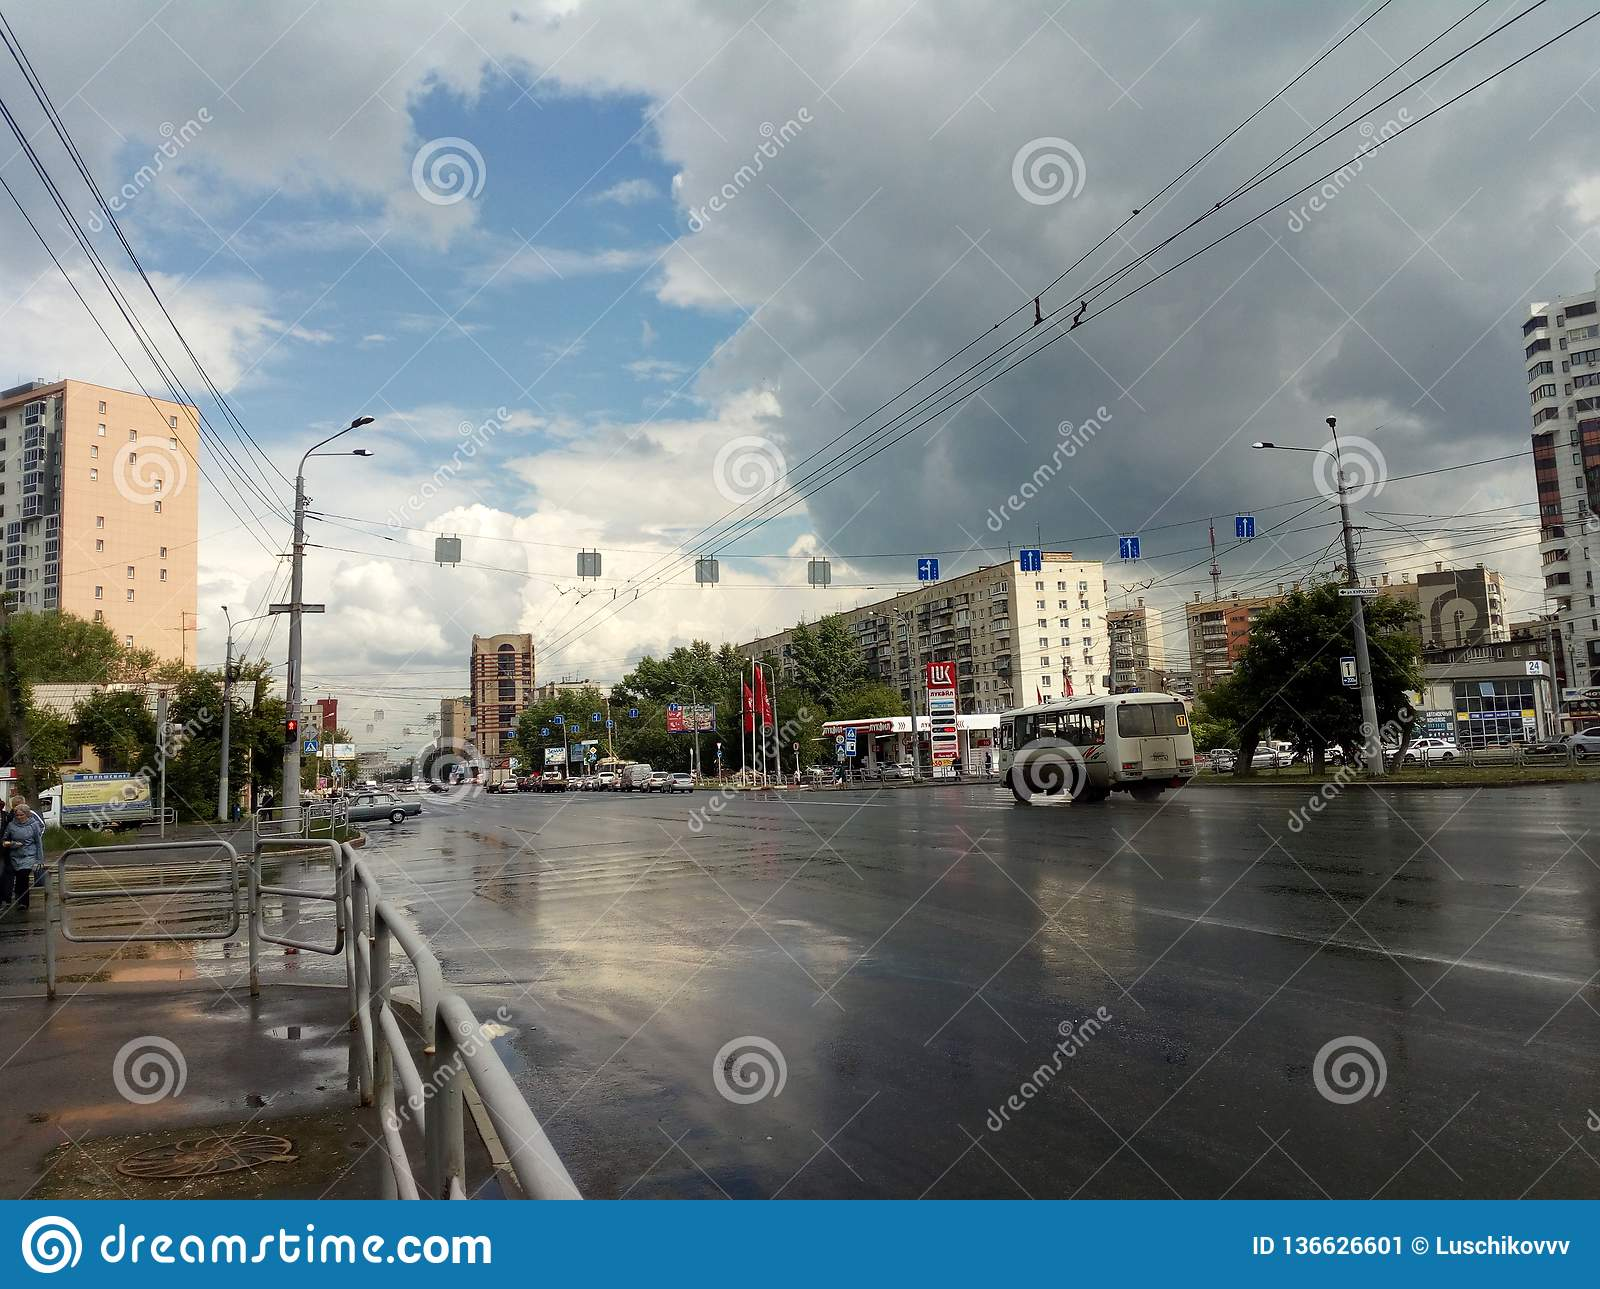 City of Chelyabinsk after a storm shower